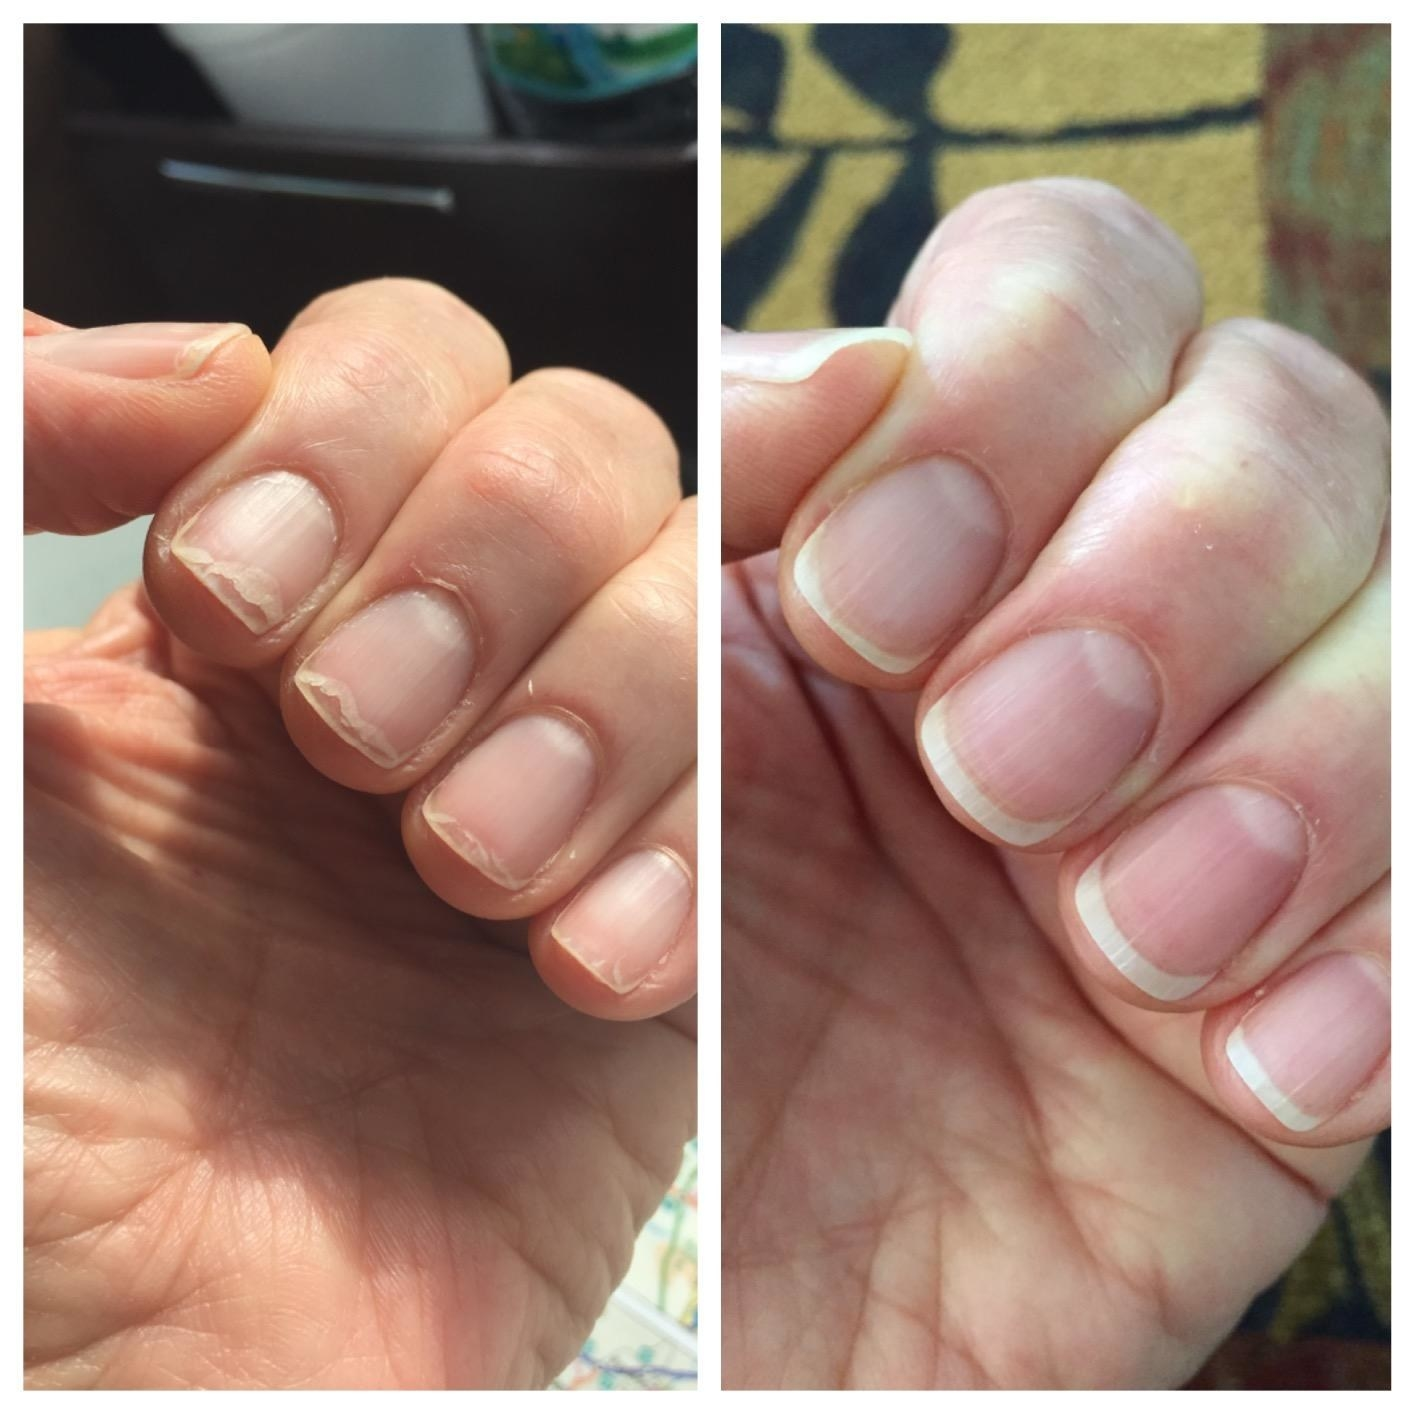 Reviewer's before and after showing the cuticle oil helped strengthen their peeling nails